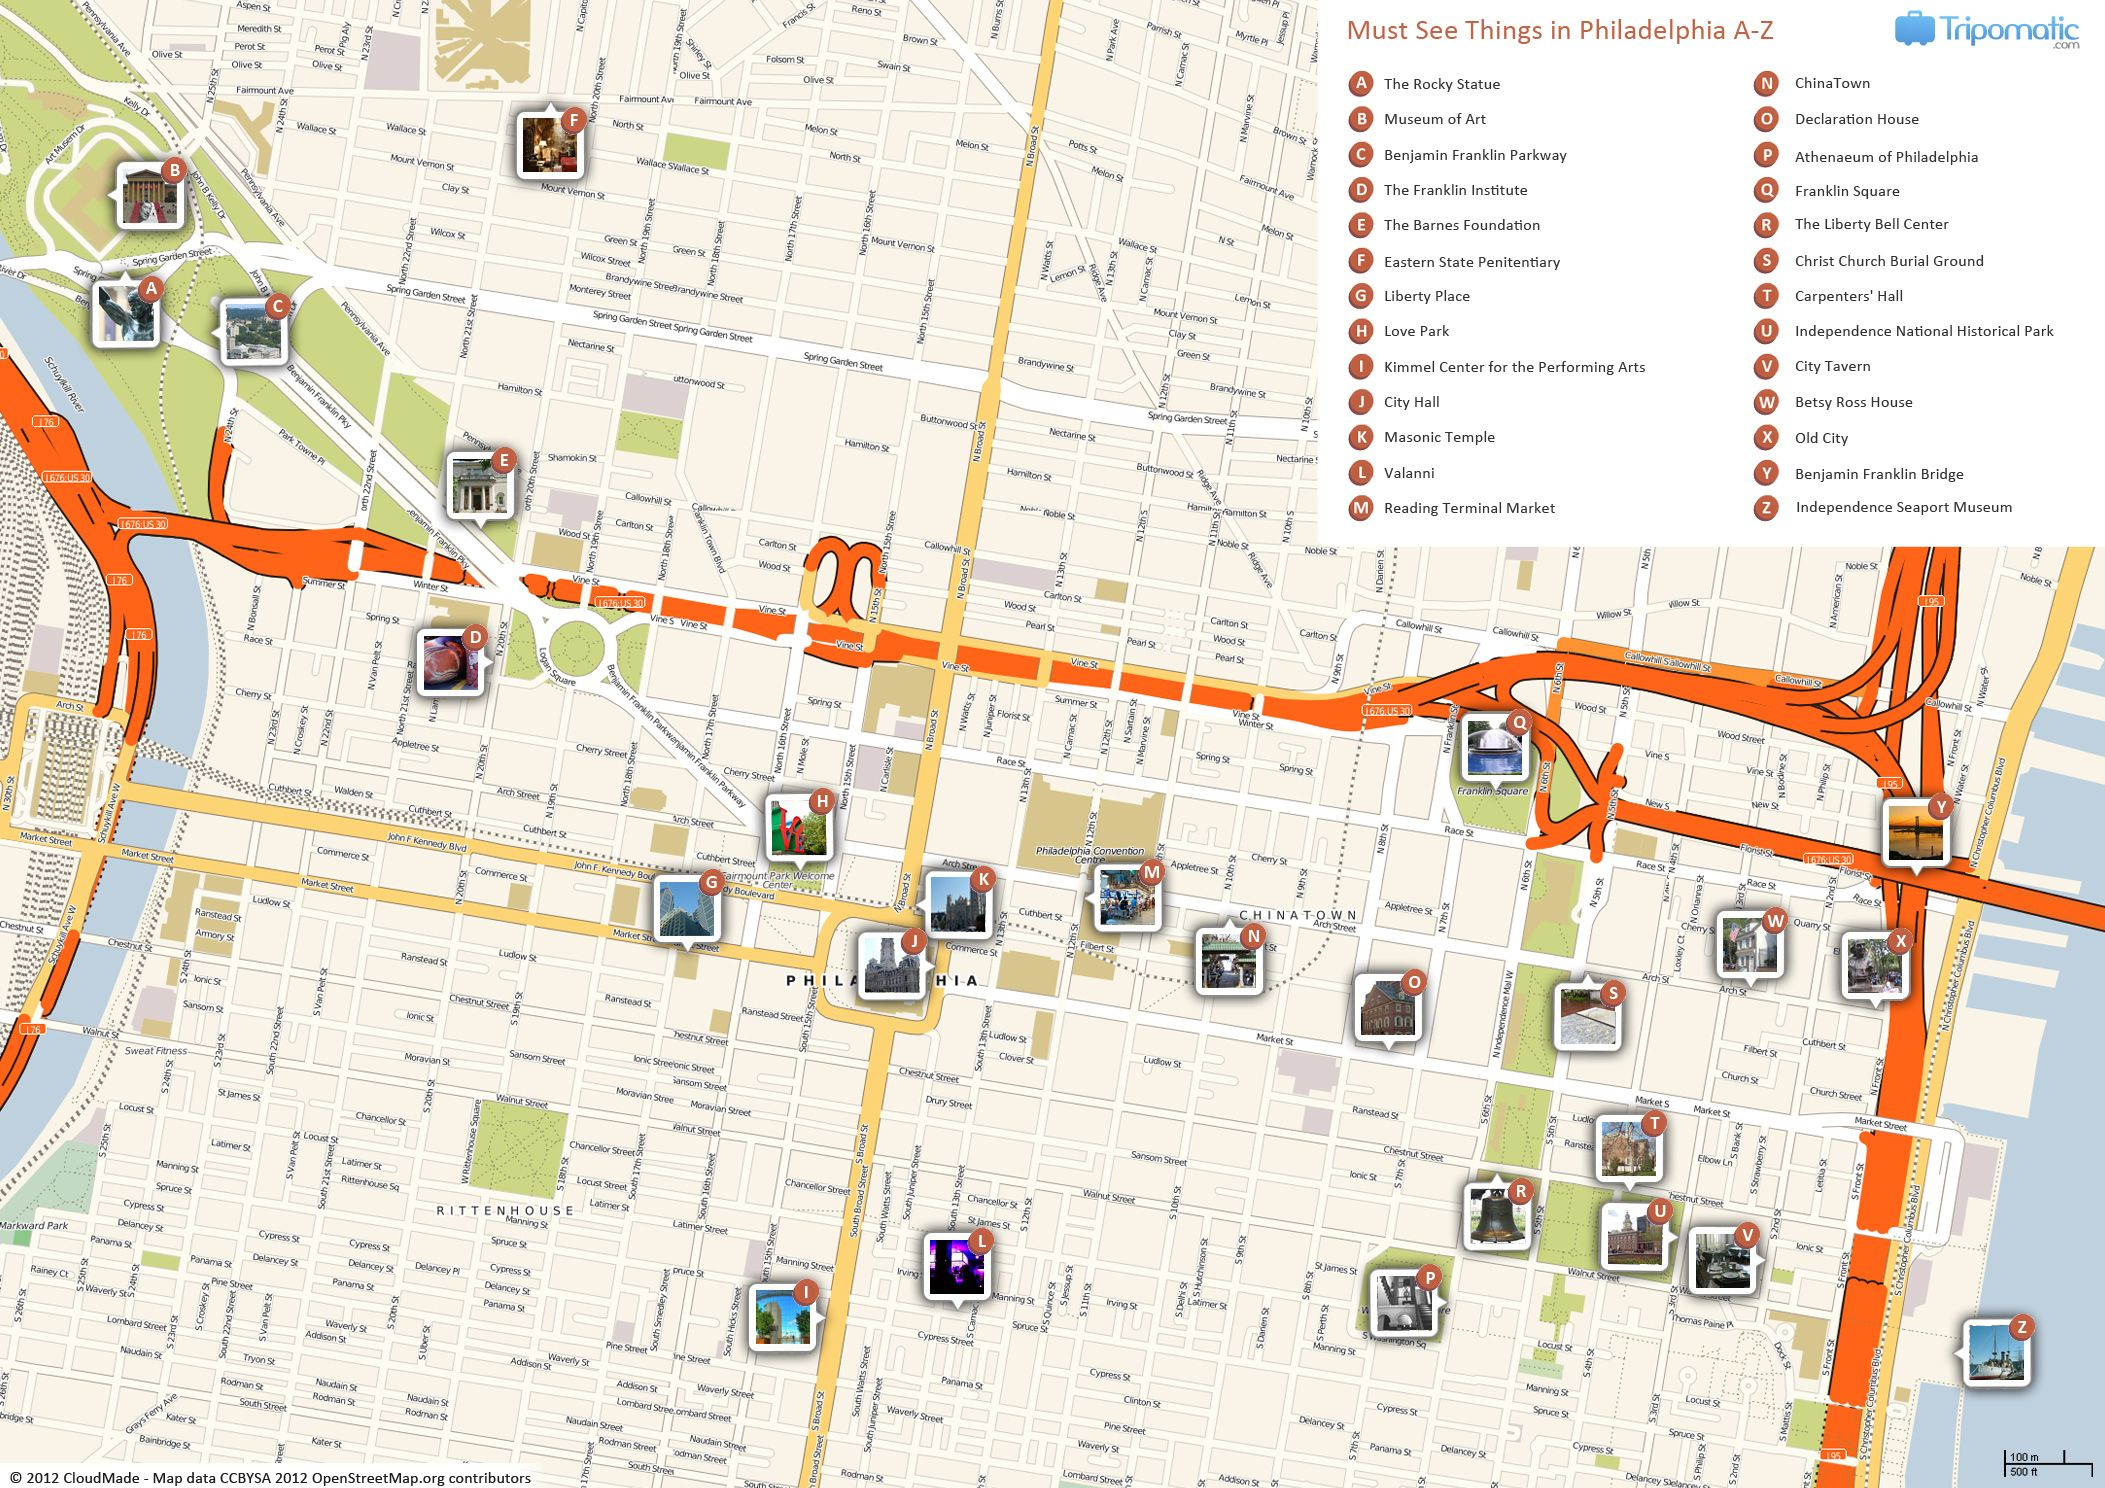 Philadelphia Printable Tourist Map | Free Tourist Maps - Philadelphia Street Map Printable